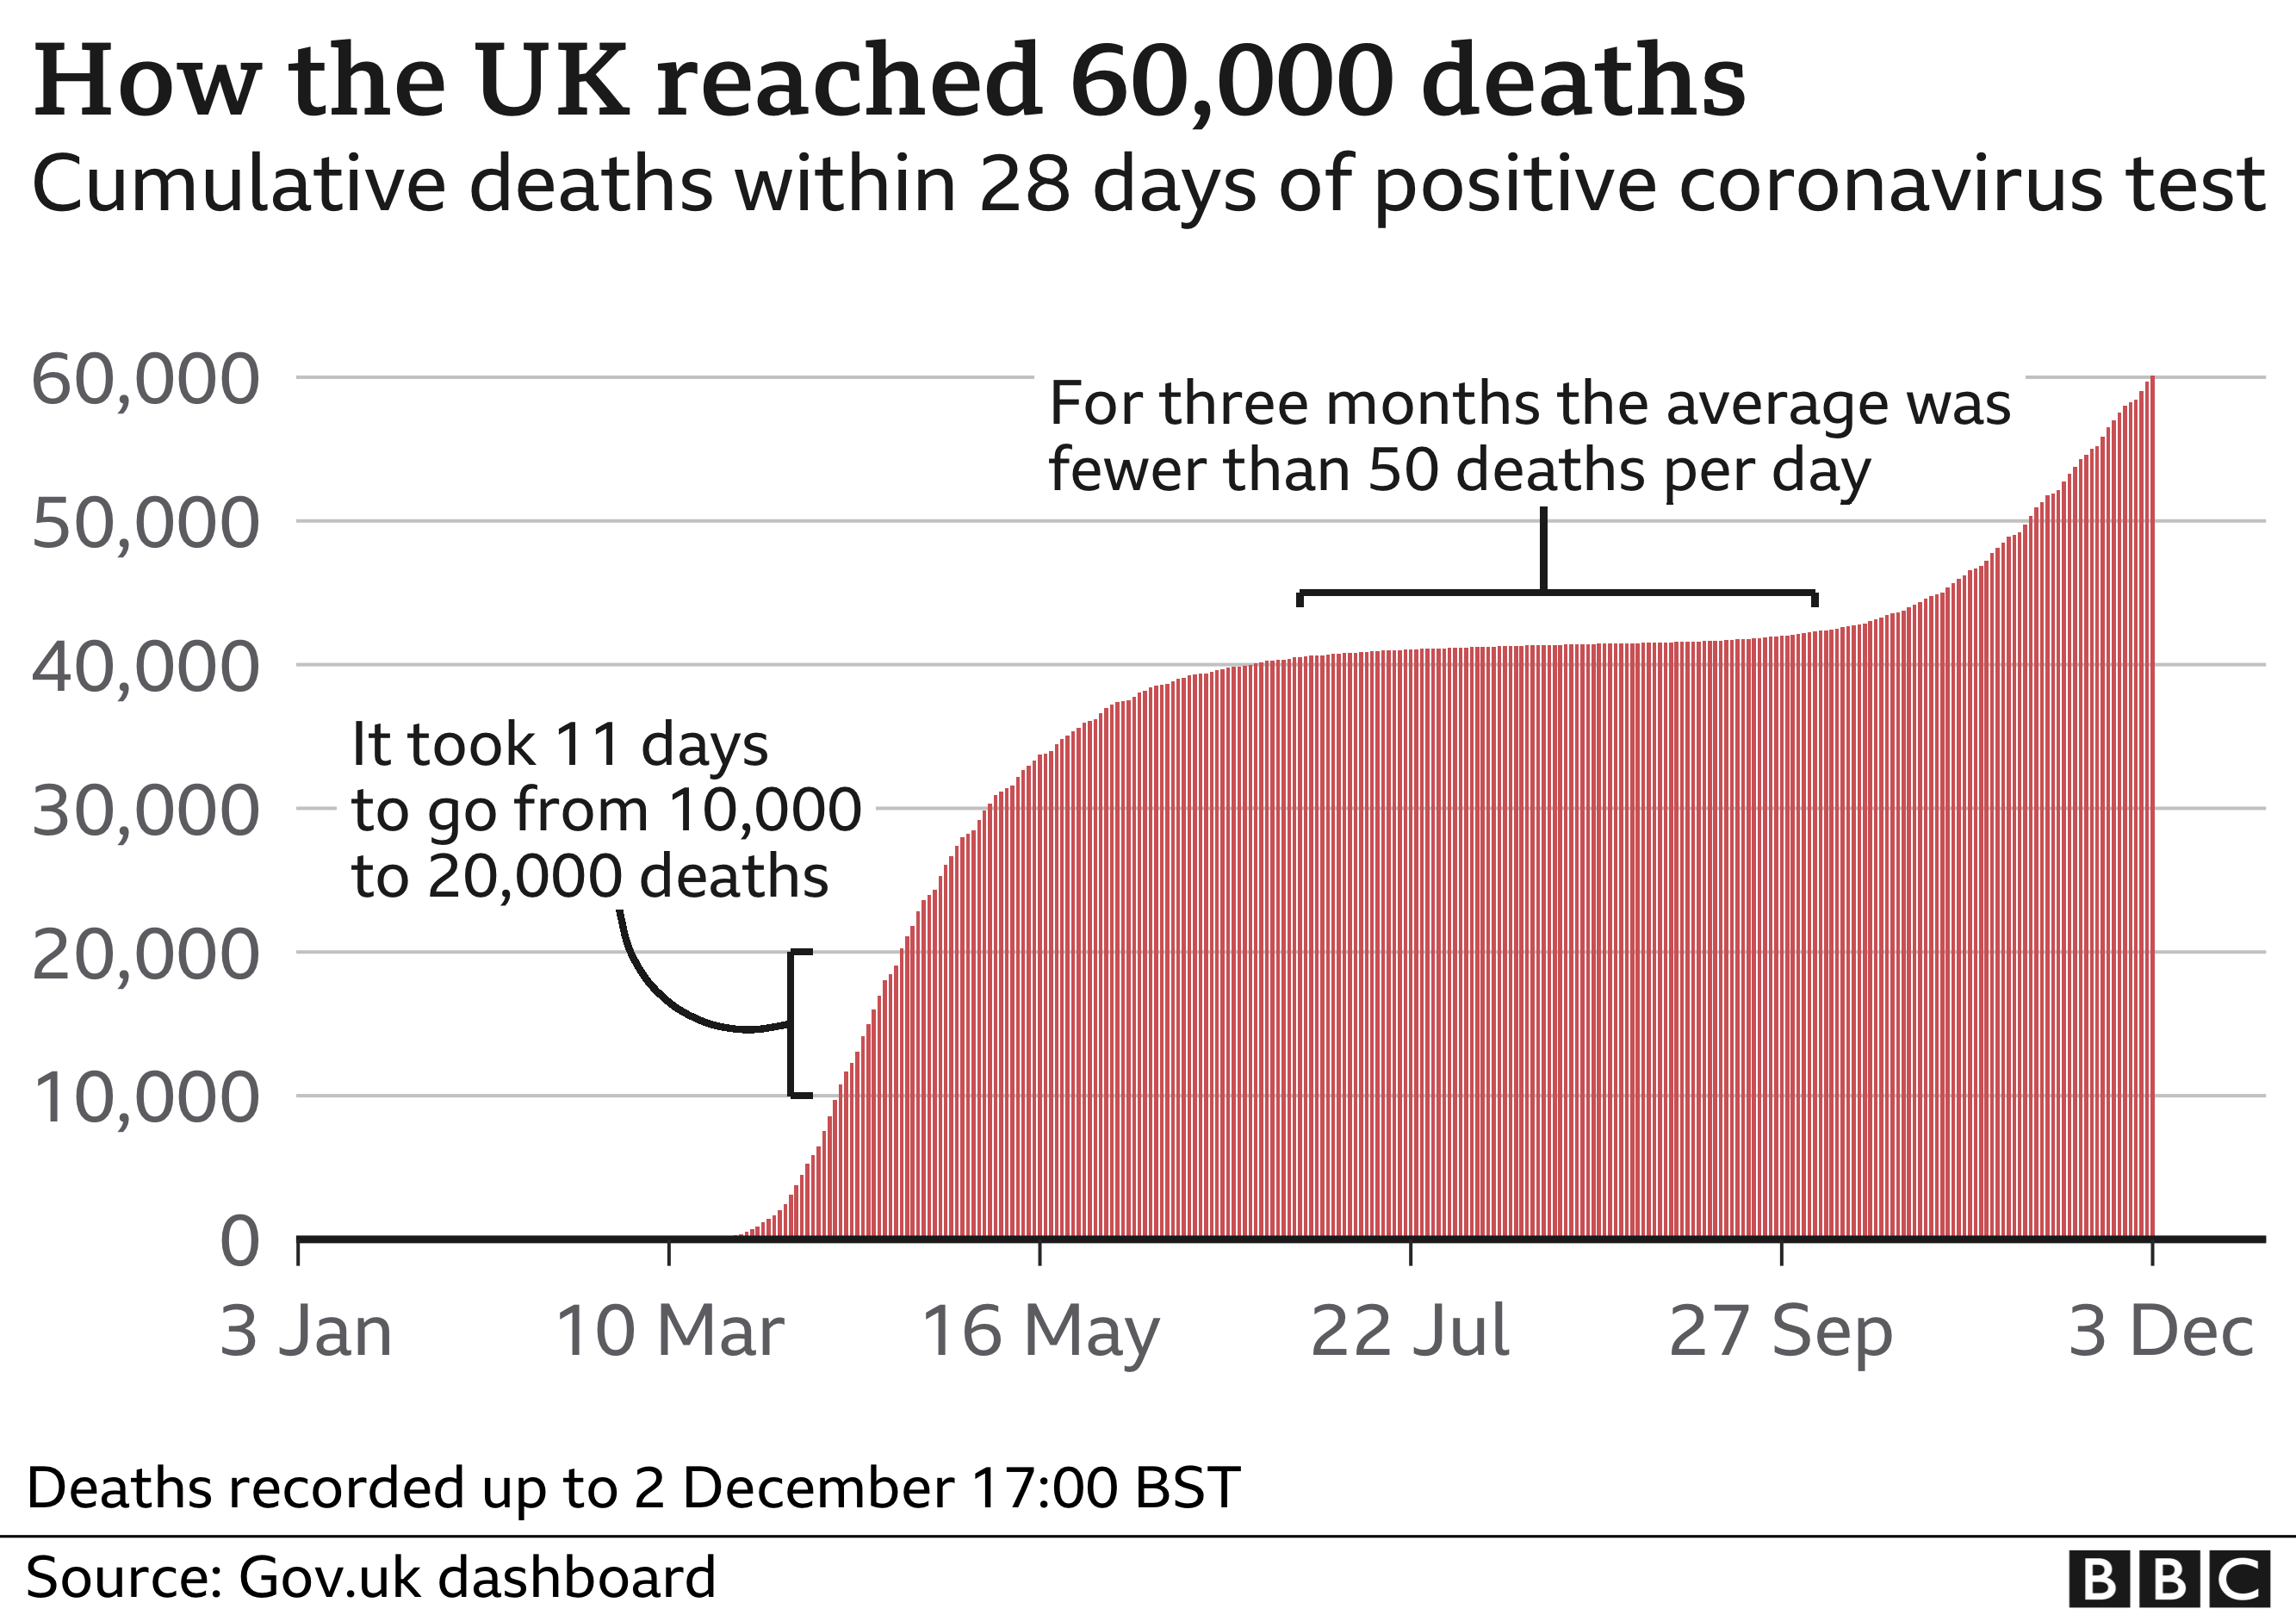 Chart showing how the UK reached 60,000 deaths